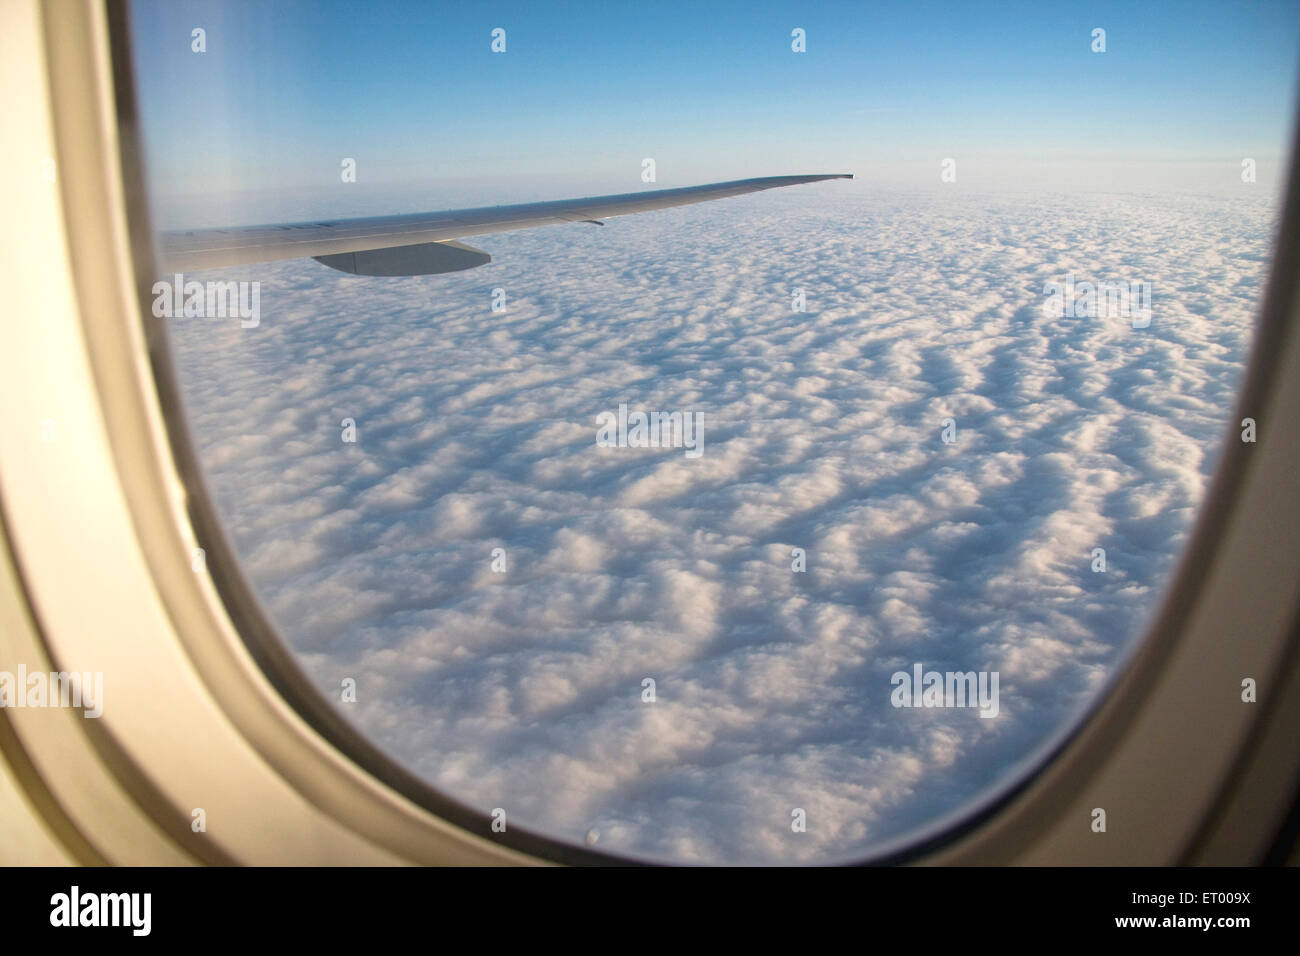 Cloud seen from Aircraft window - Stock Image